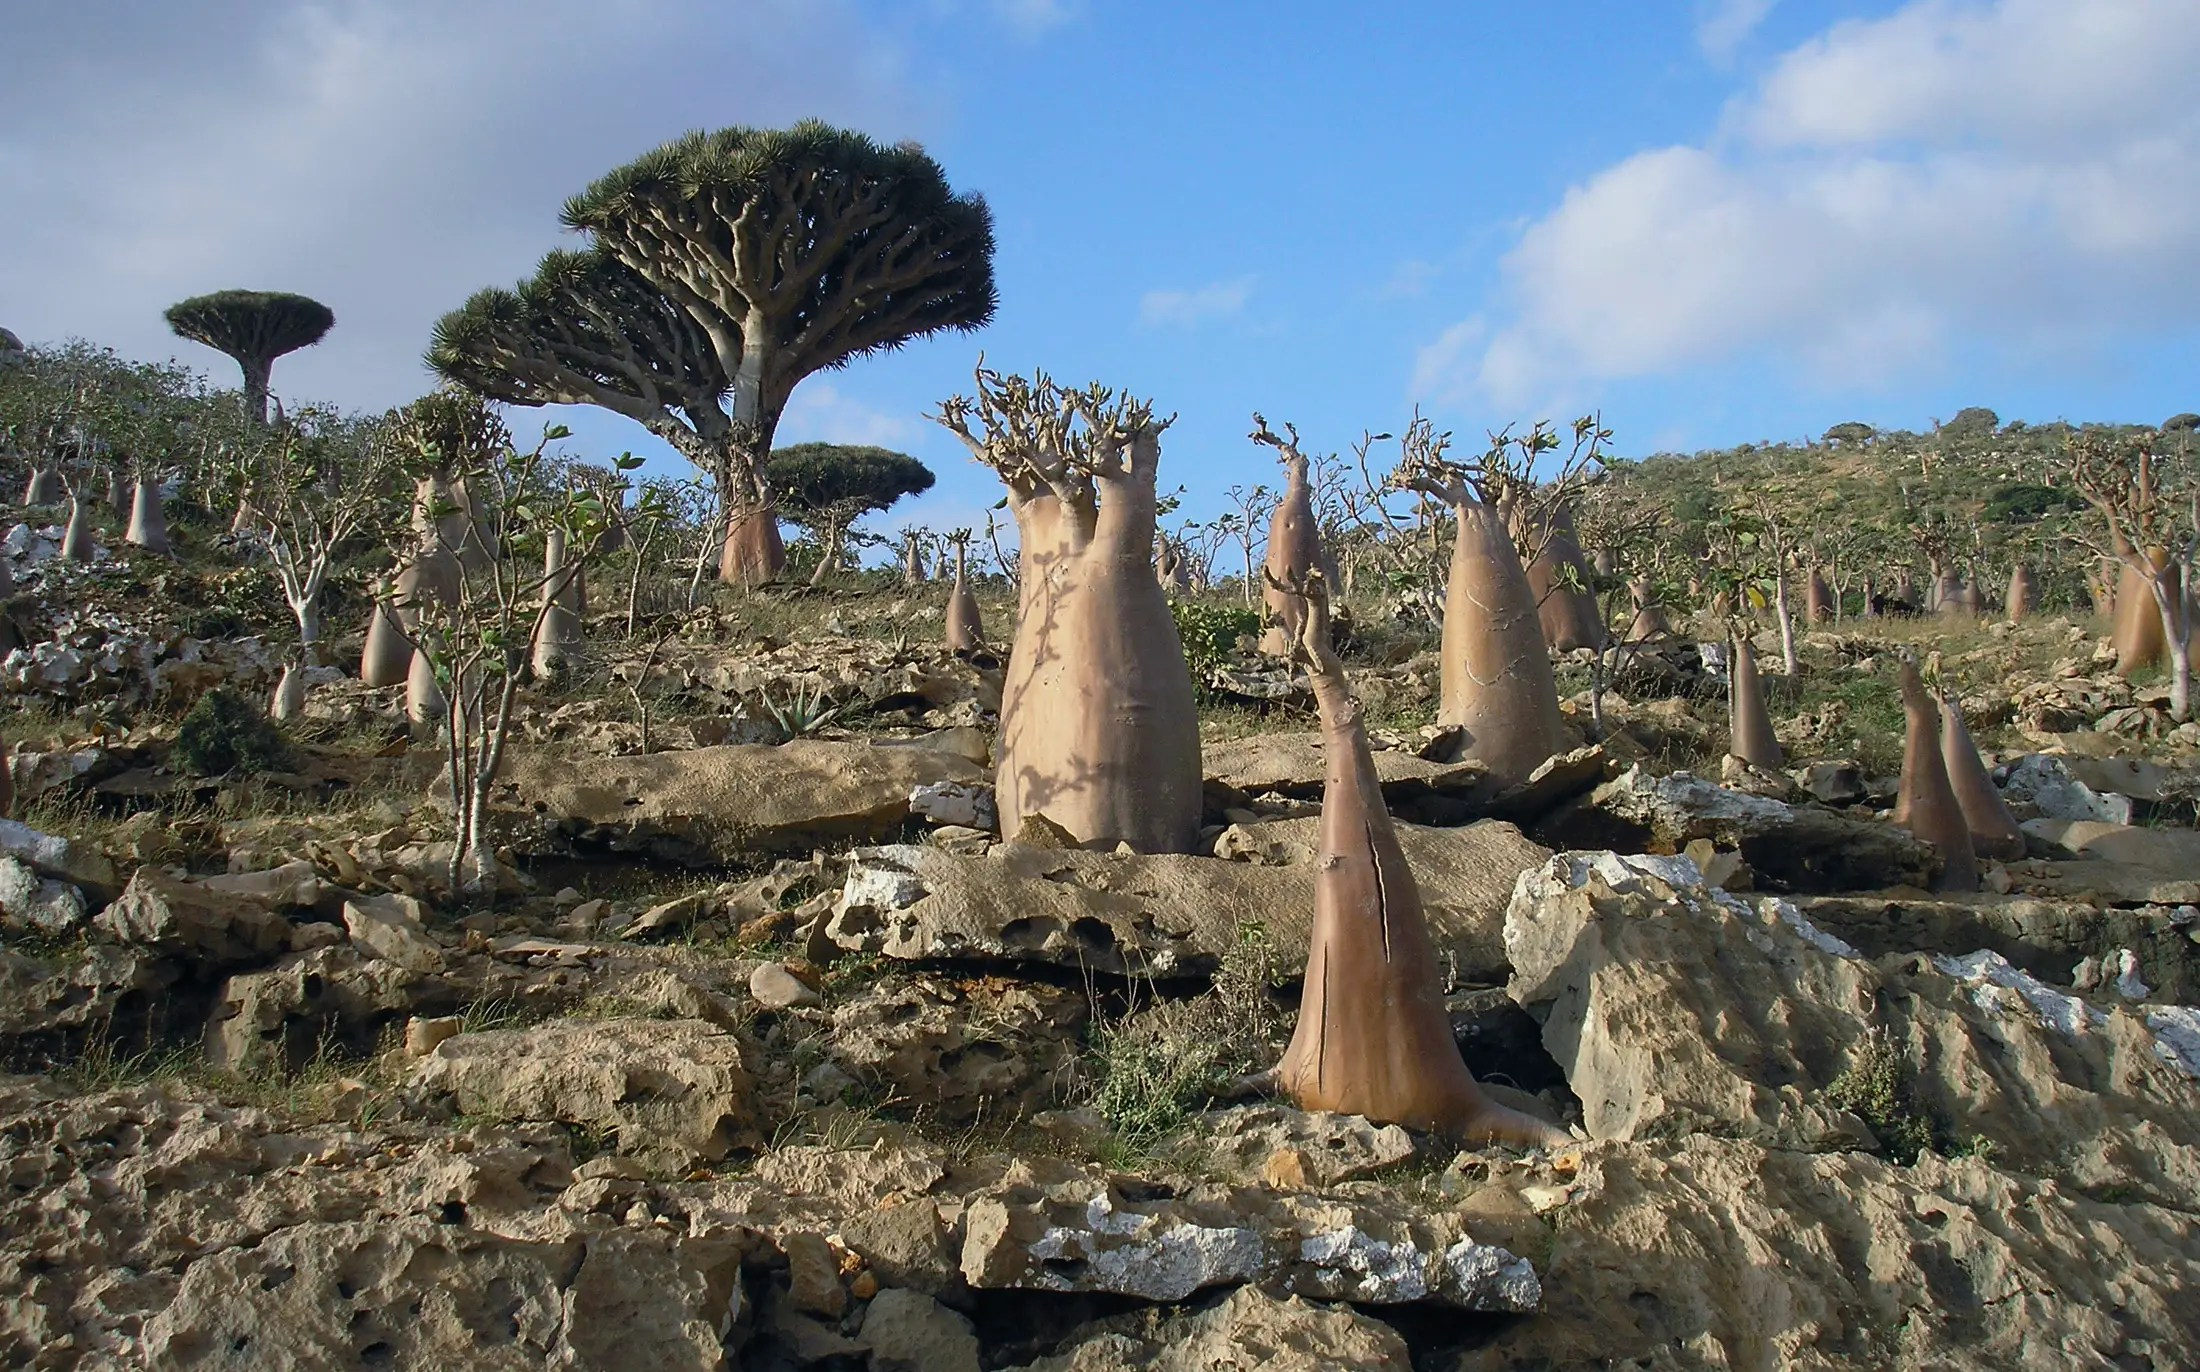 The tiny Yemeni archipelago of Socotra has very unique plant life, a third of which can be found nowhere else in the world.